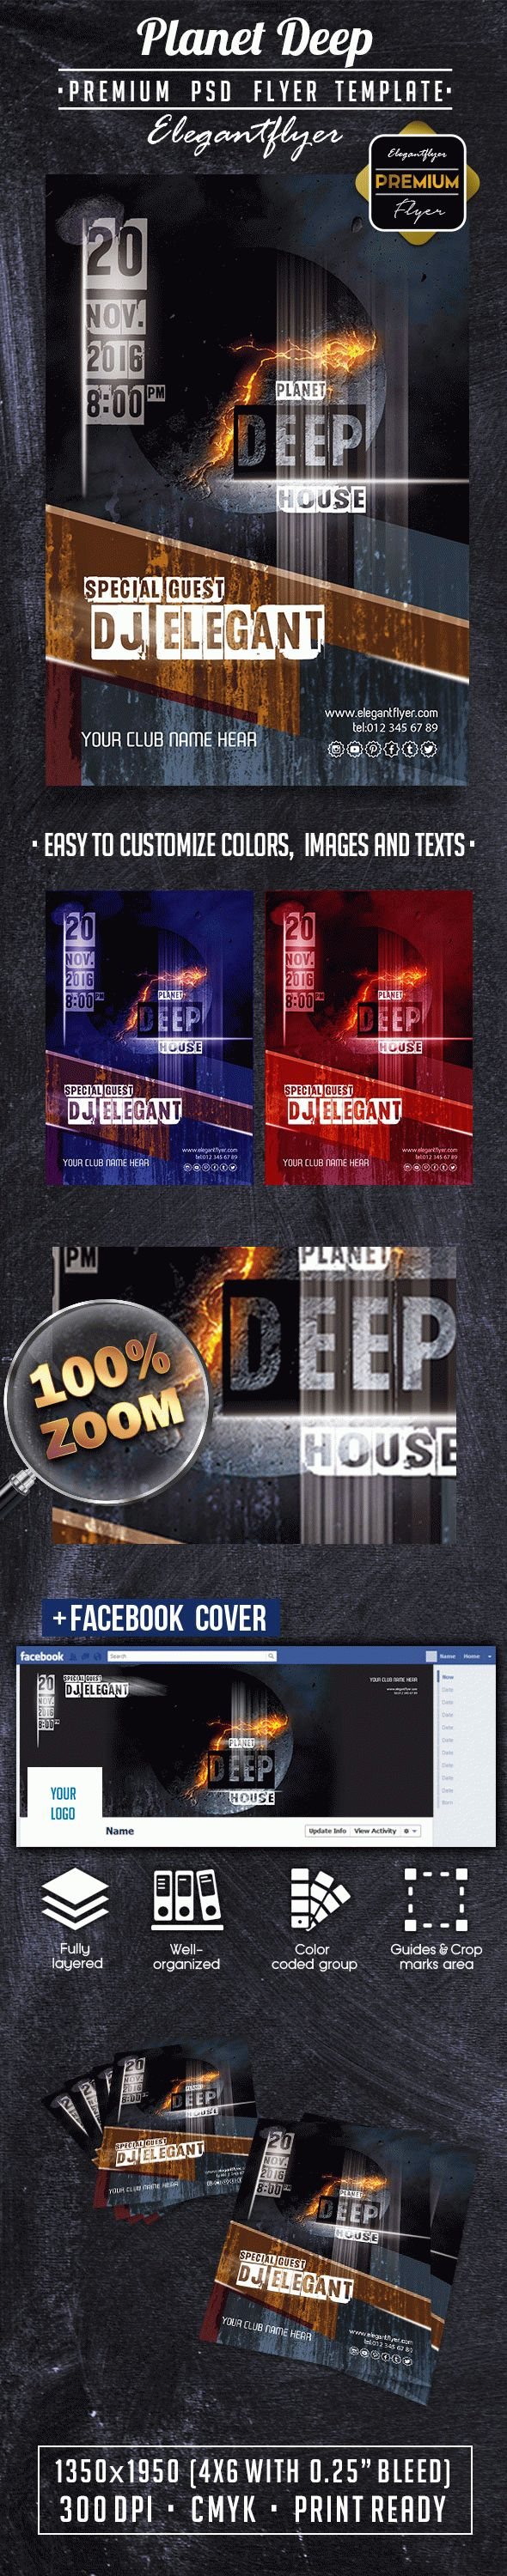 Planet DEEP Flyer PSD Template